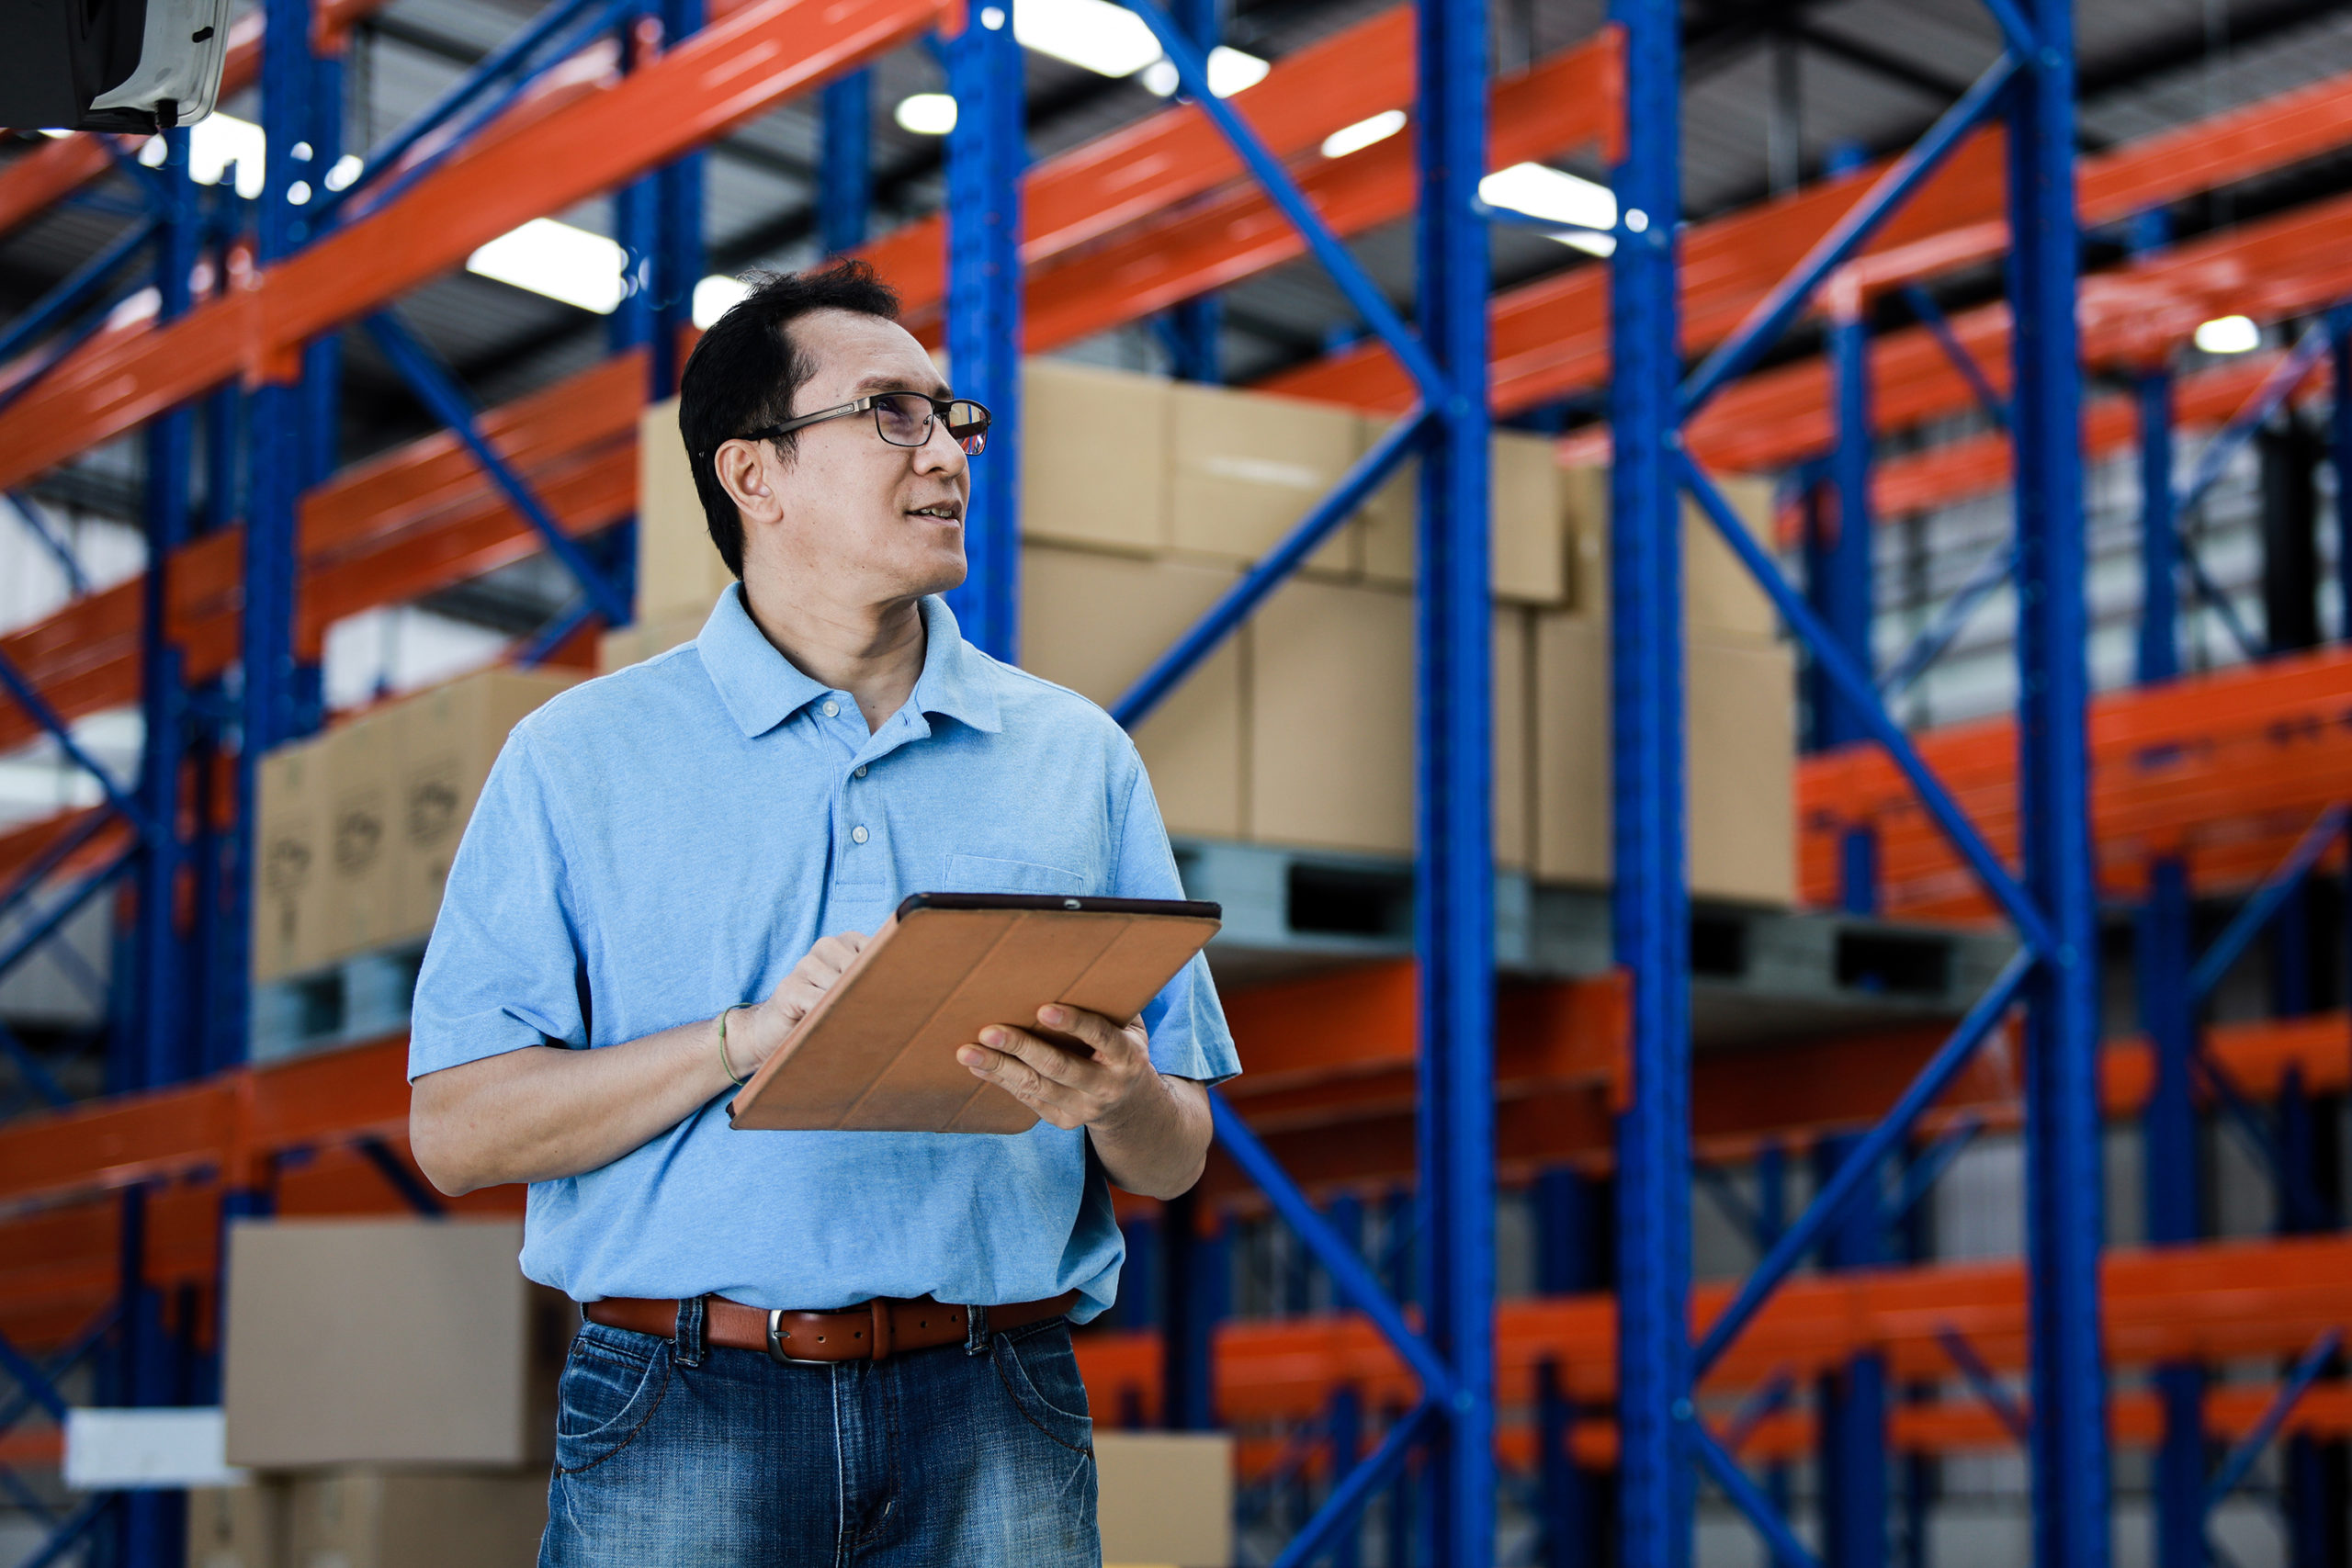 Man in warehouse representing supply chain process